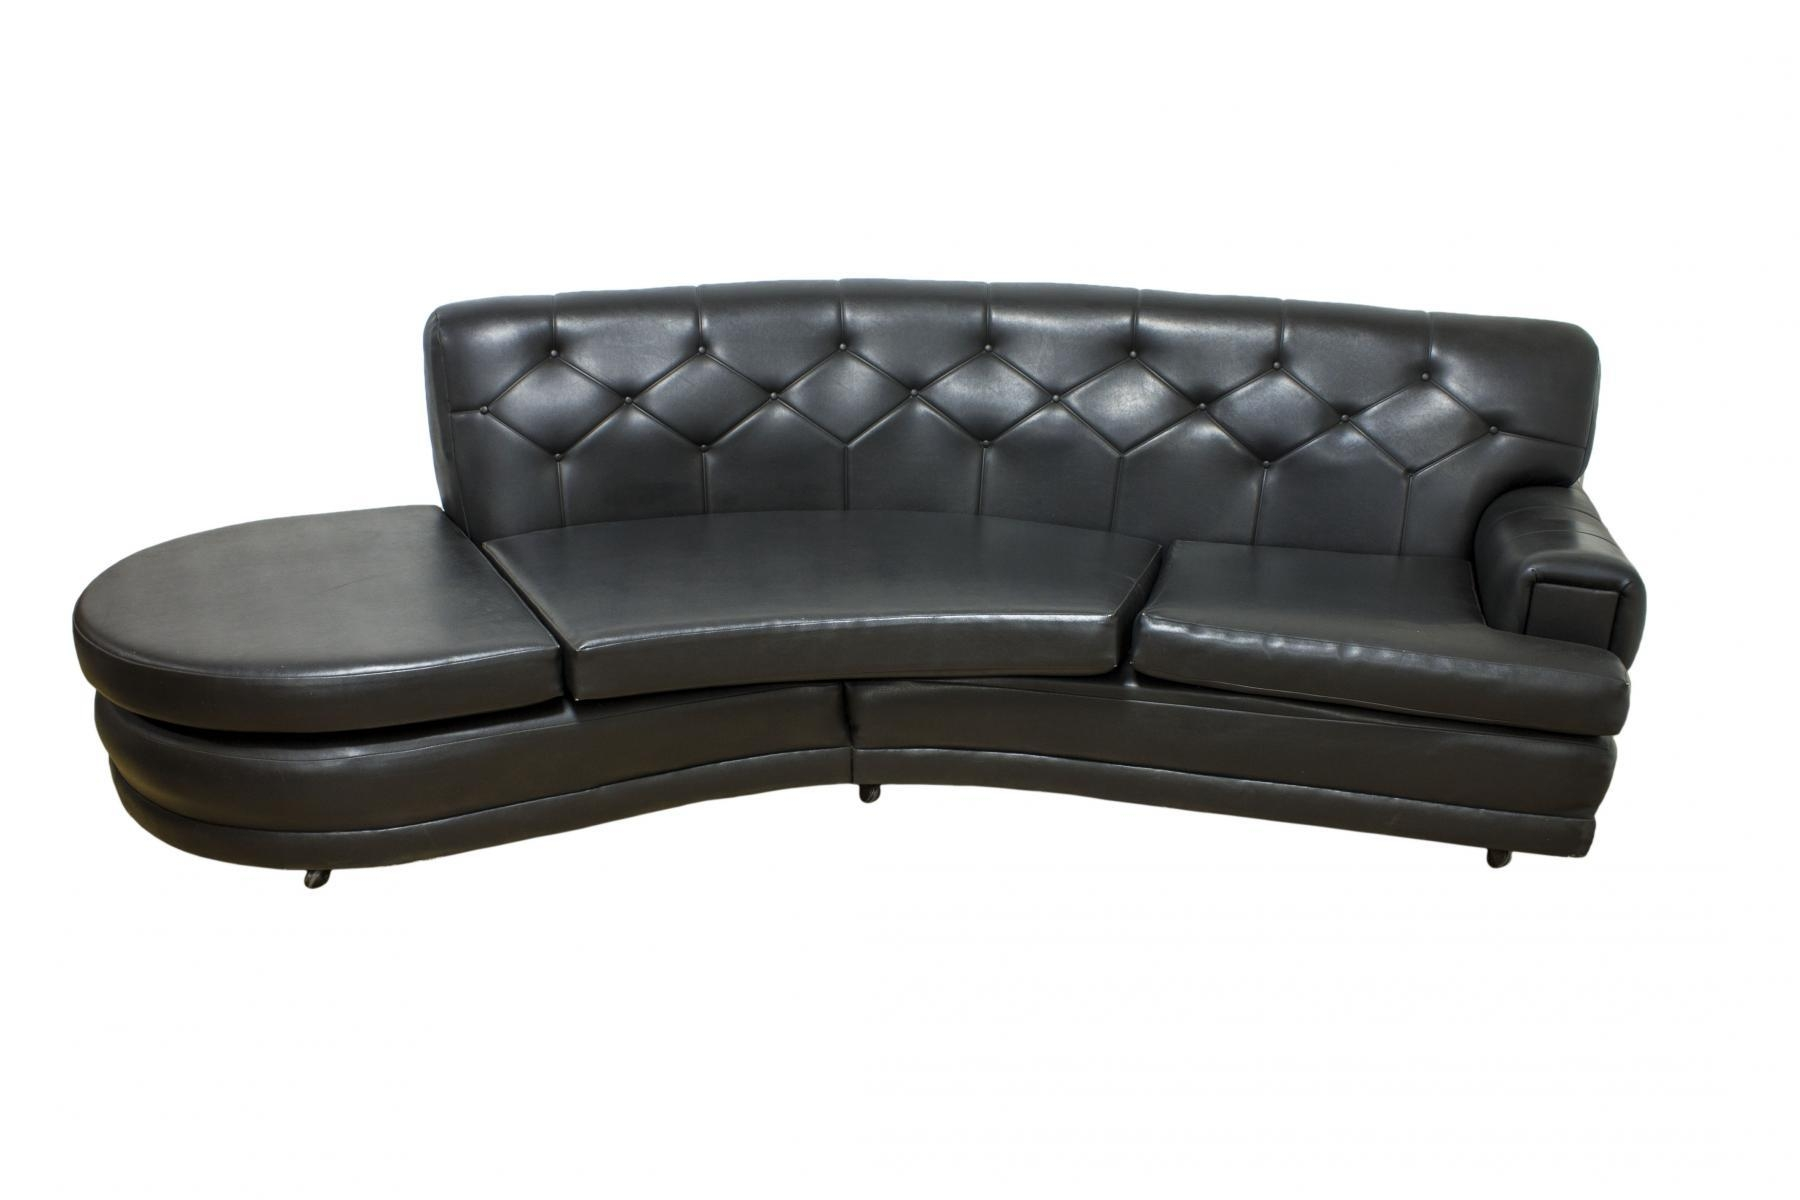 Mid Century Retro Black Vinyl Sofa From G Plan For Sale At Pamono Pertaining To Black Vinyl Sofas (Image 13 of 20)